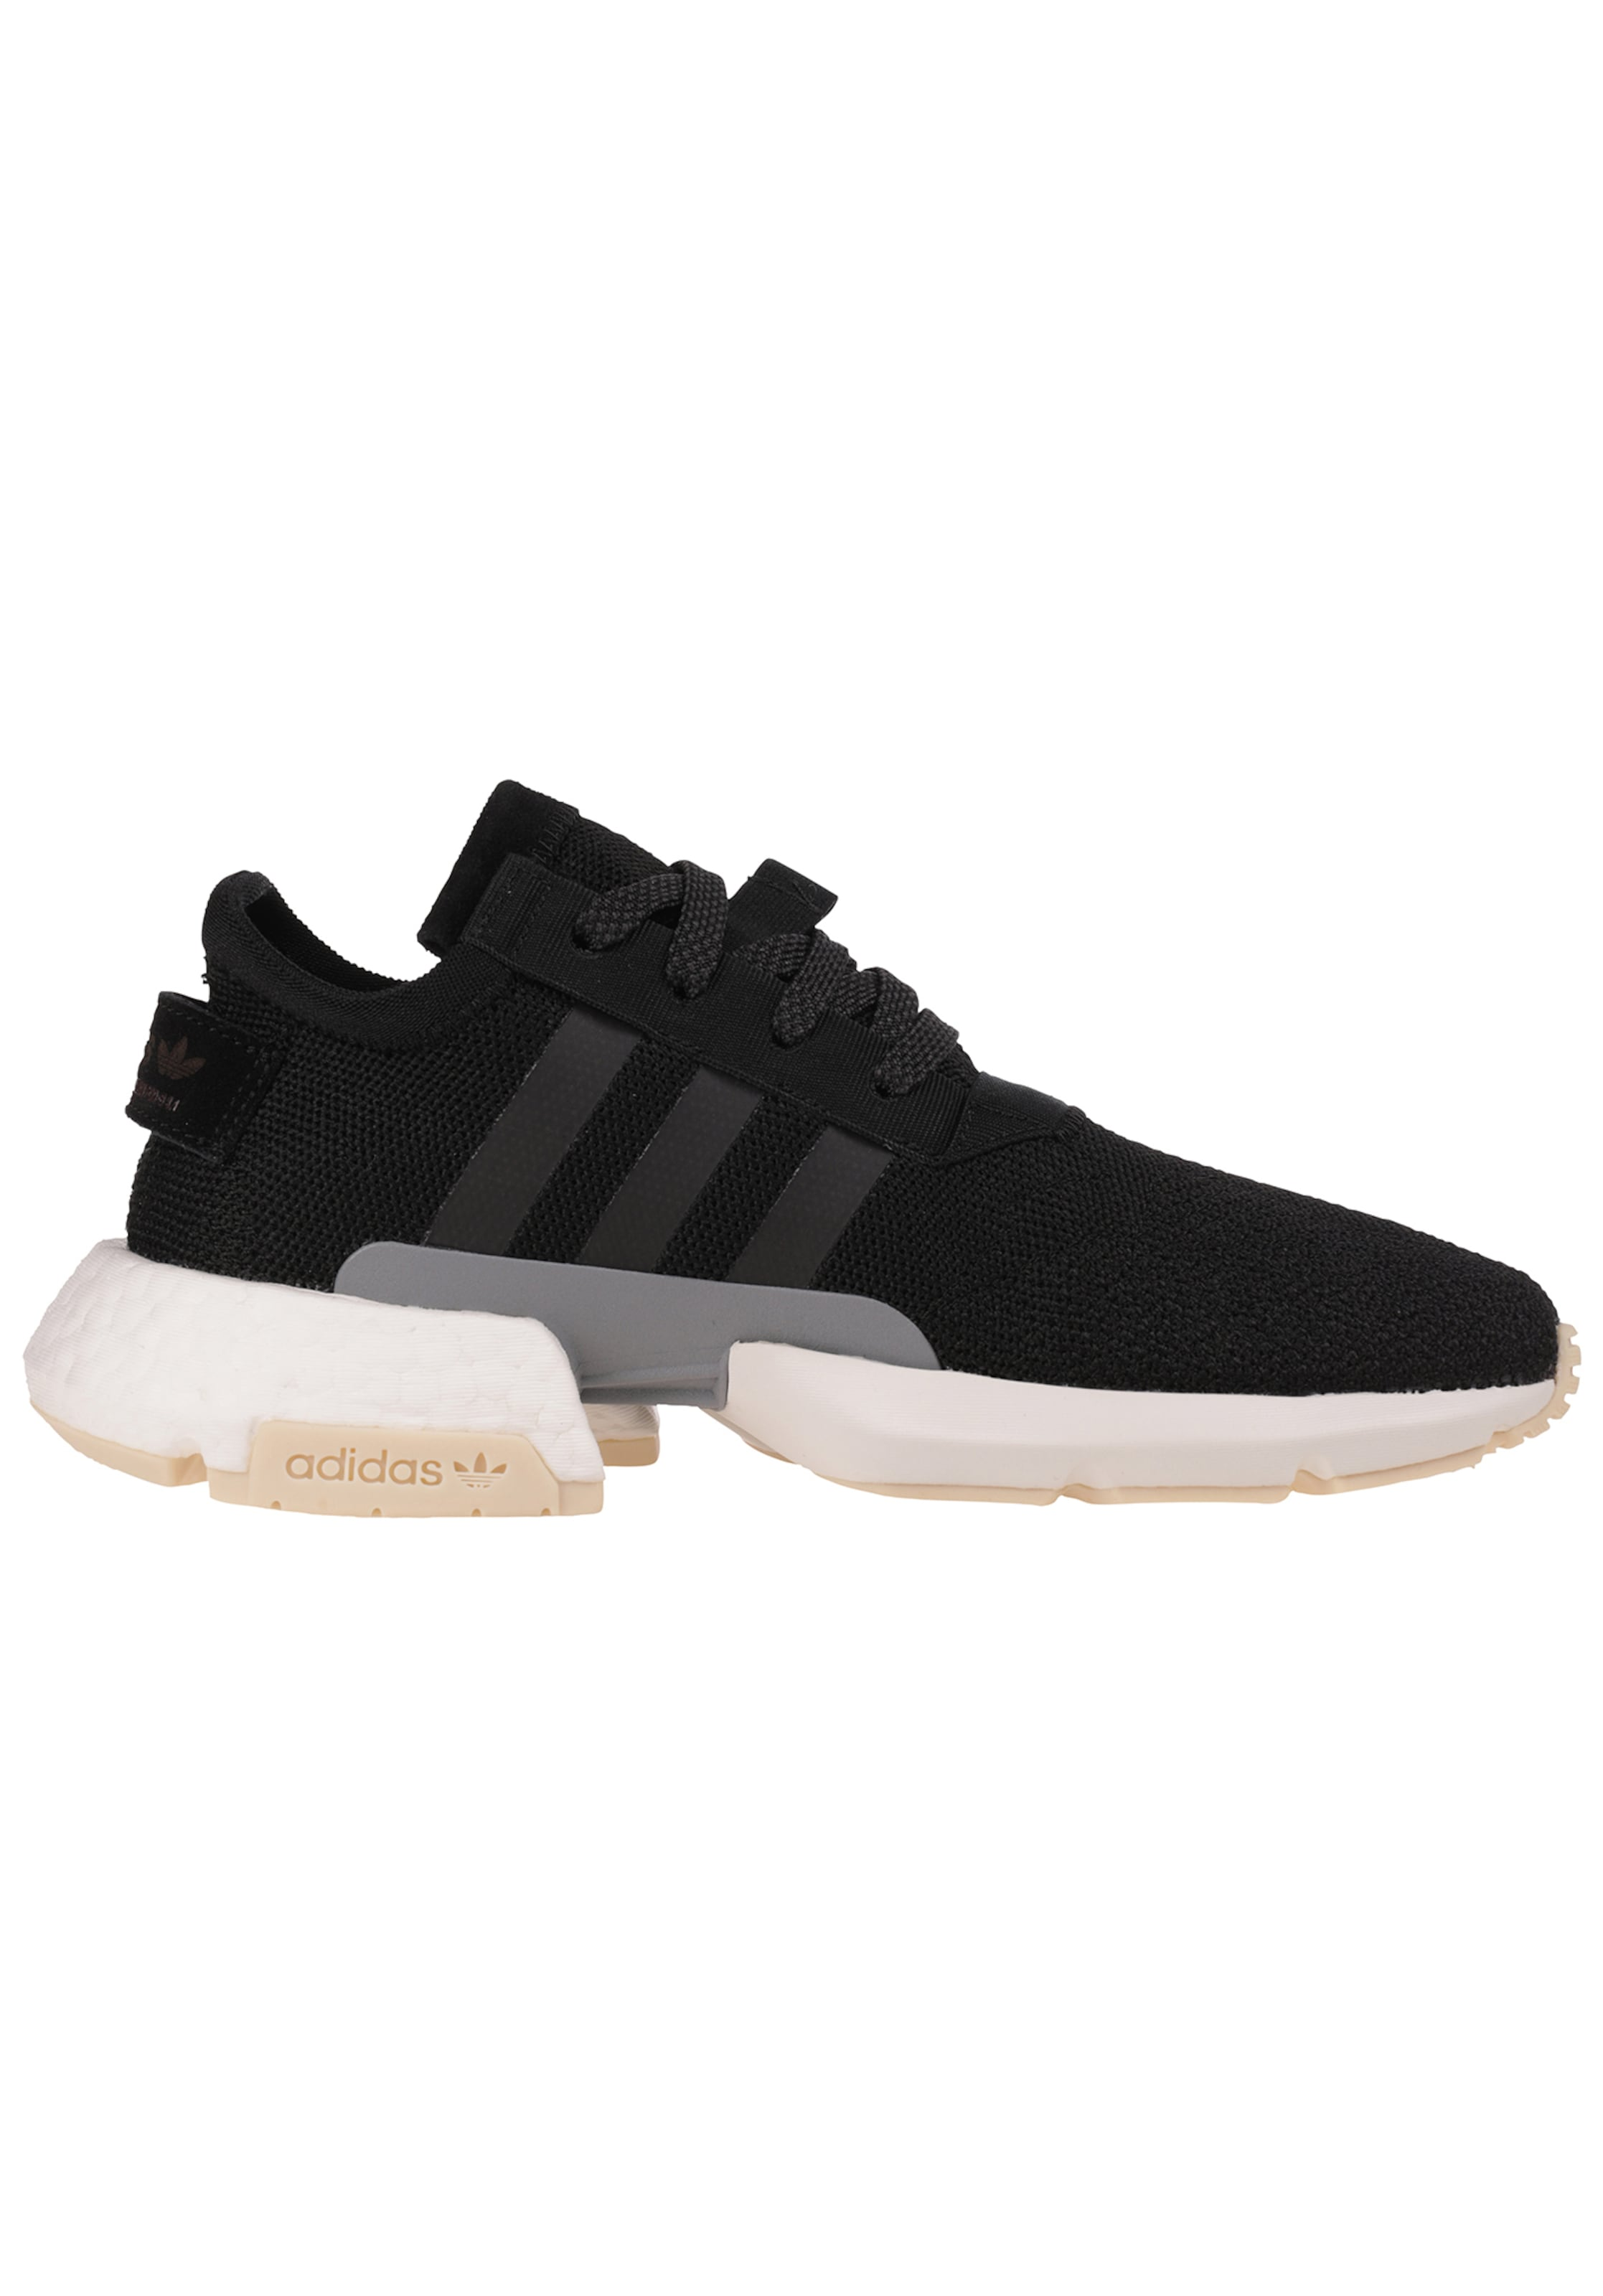 'pod GrisNoir Adidas Originals Baskets s3 En 1 Basses W' hrBxsQtdoC